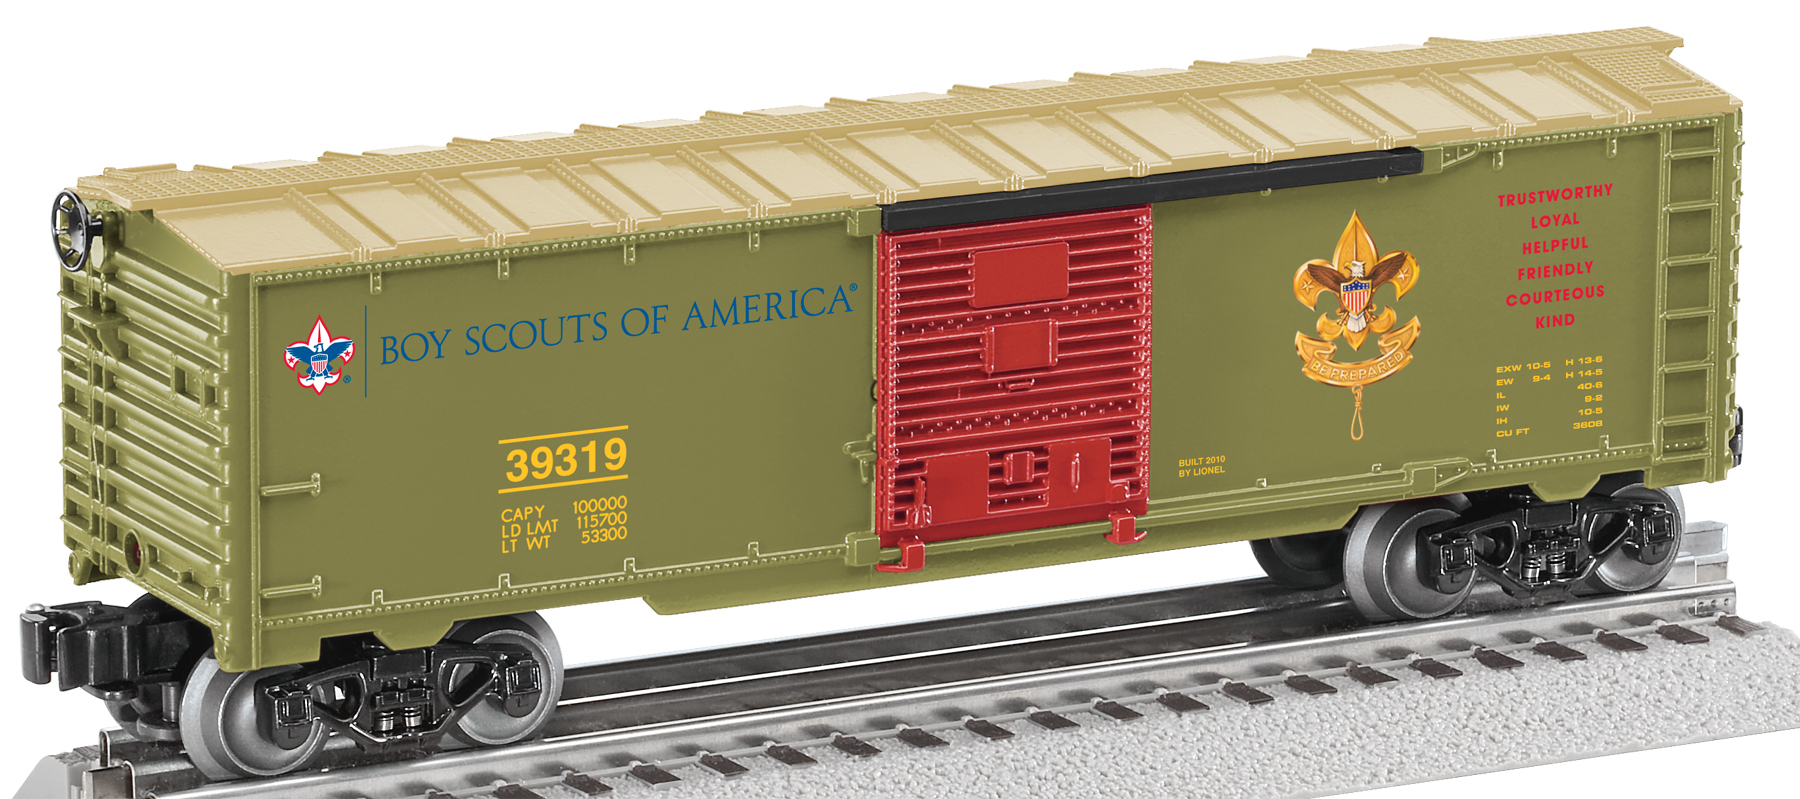 "Boy Scouts® ""Scout Law"" Add-on Boxcar image"